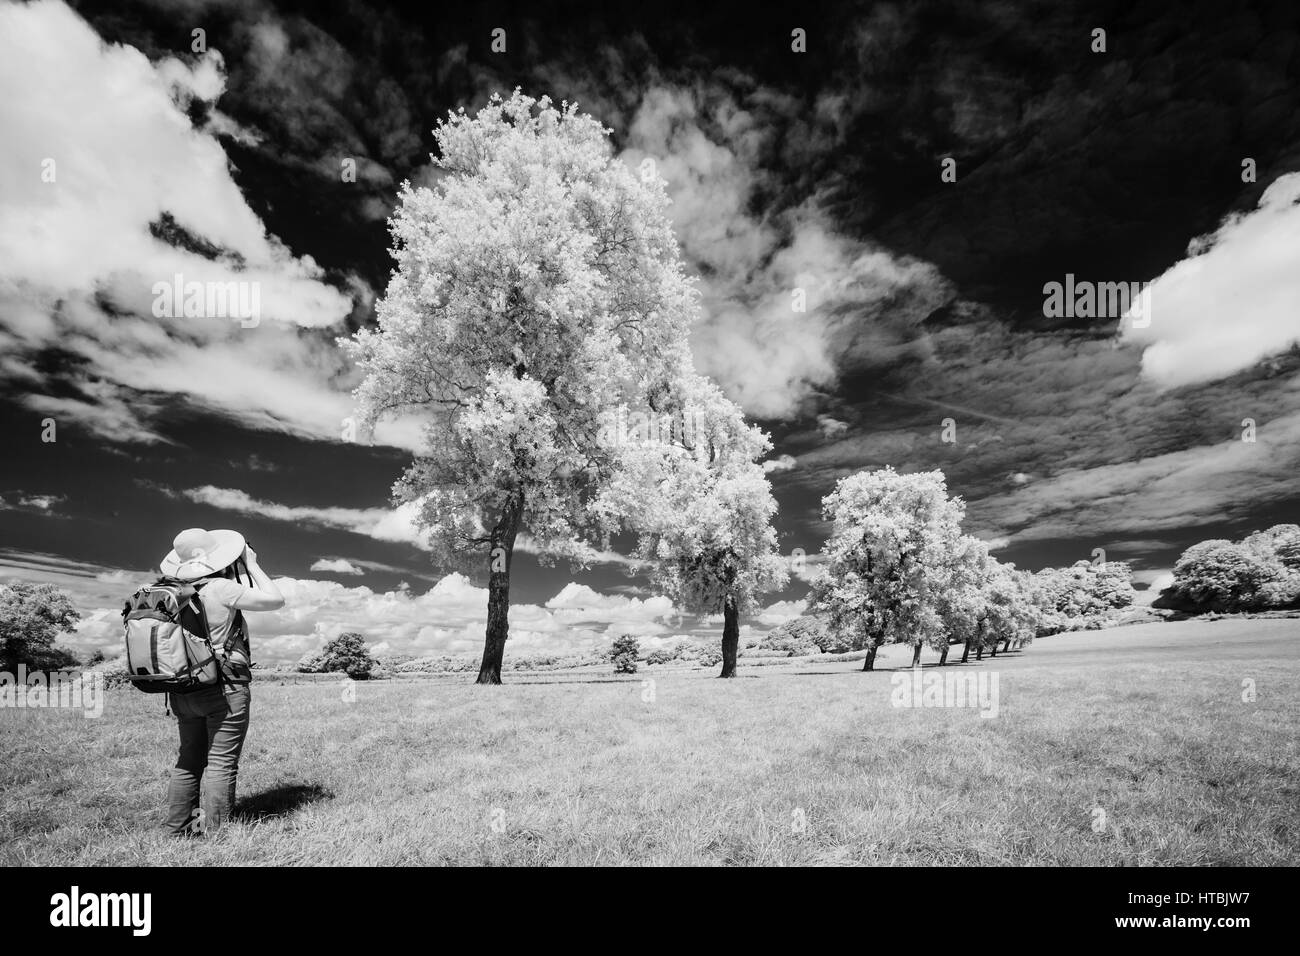 f11 Photographing the Gallop, Milborne Port, Somerset, England, UK - Stock Image